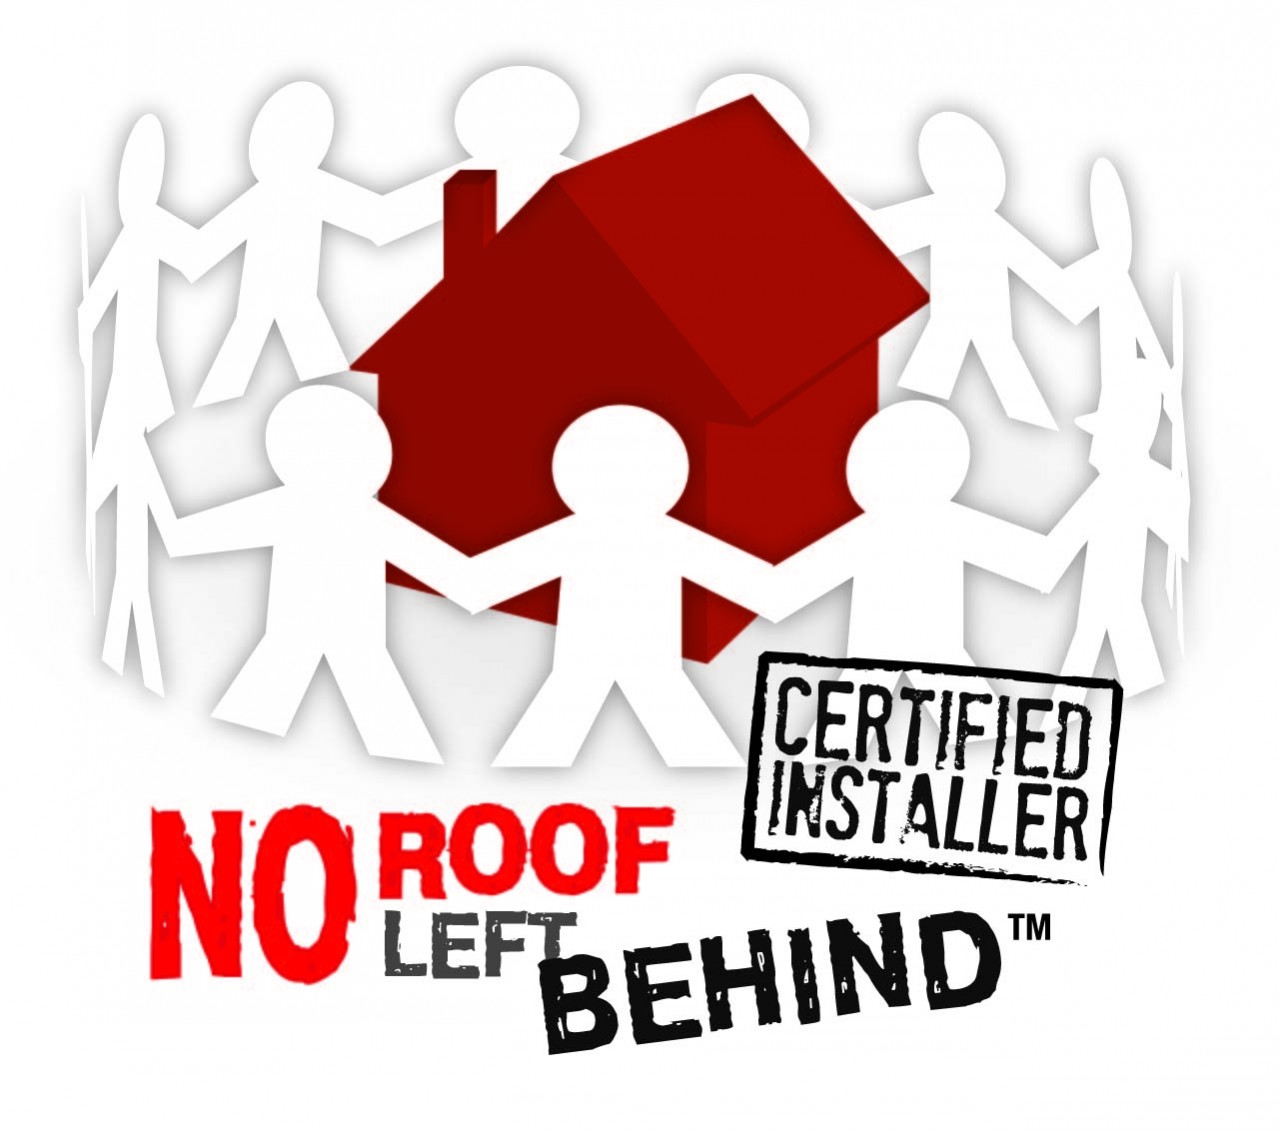 Nominate A Deserving Family To Win A New Roof